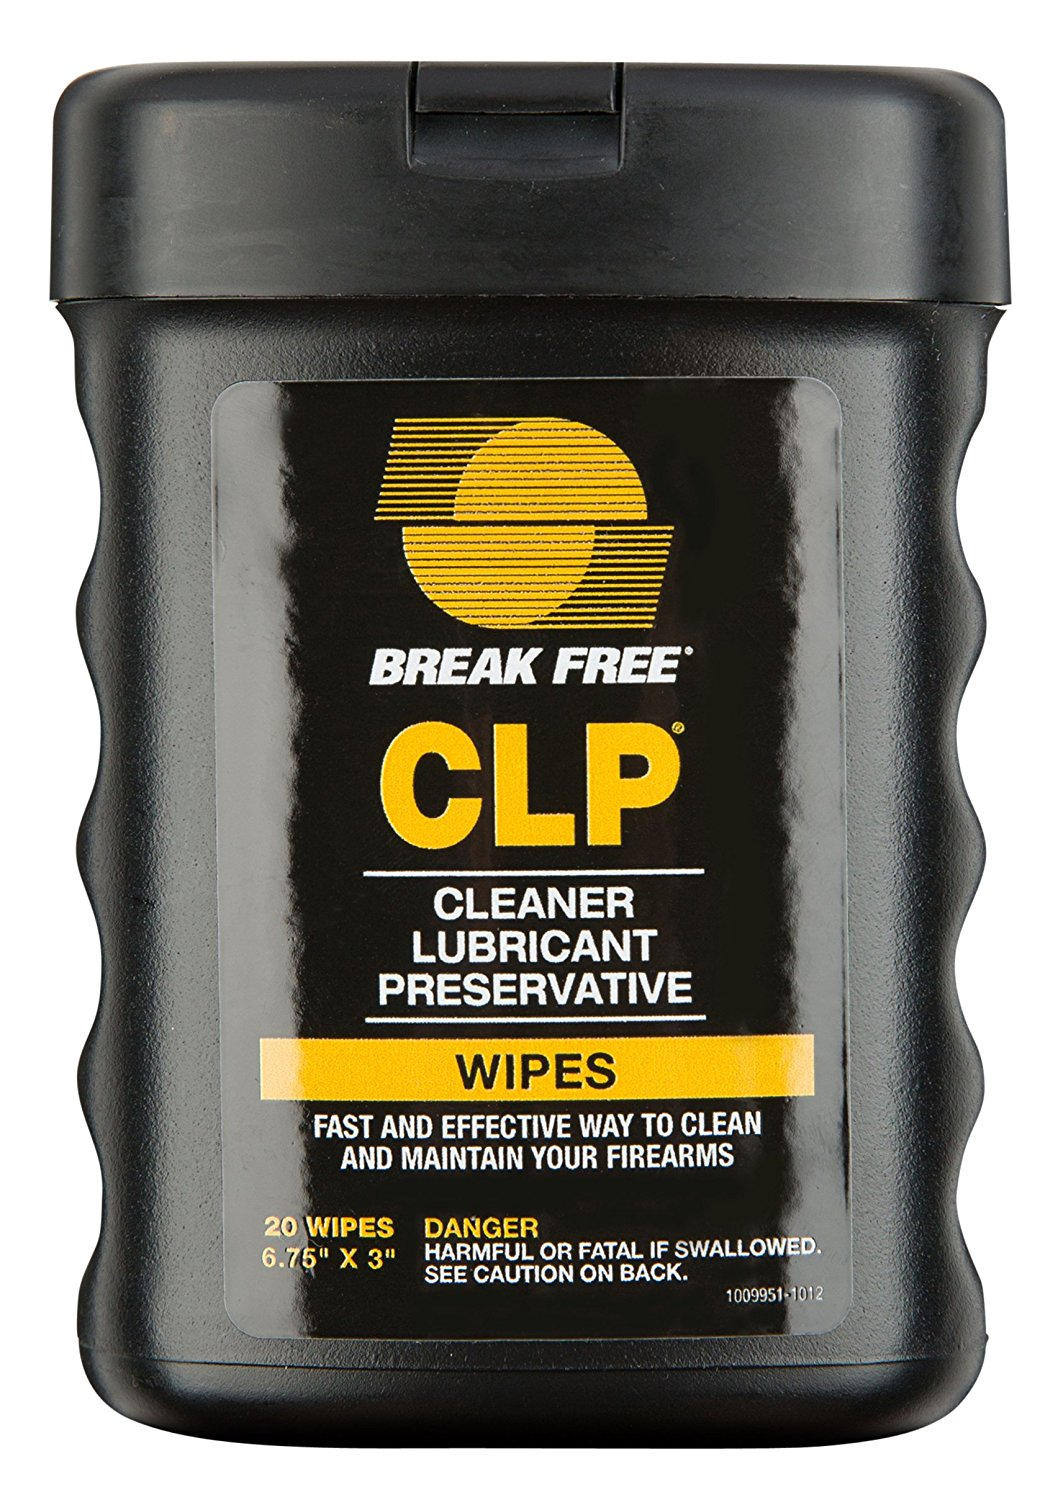 CLP Break-Free Wipes